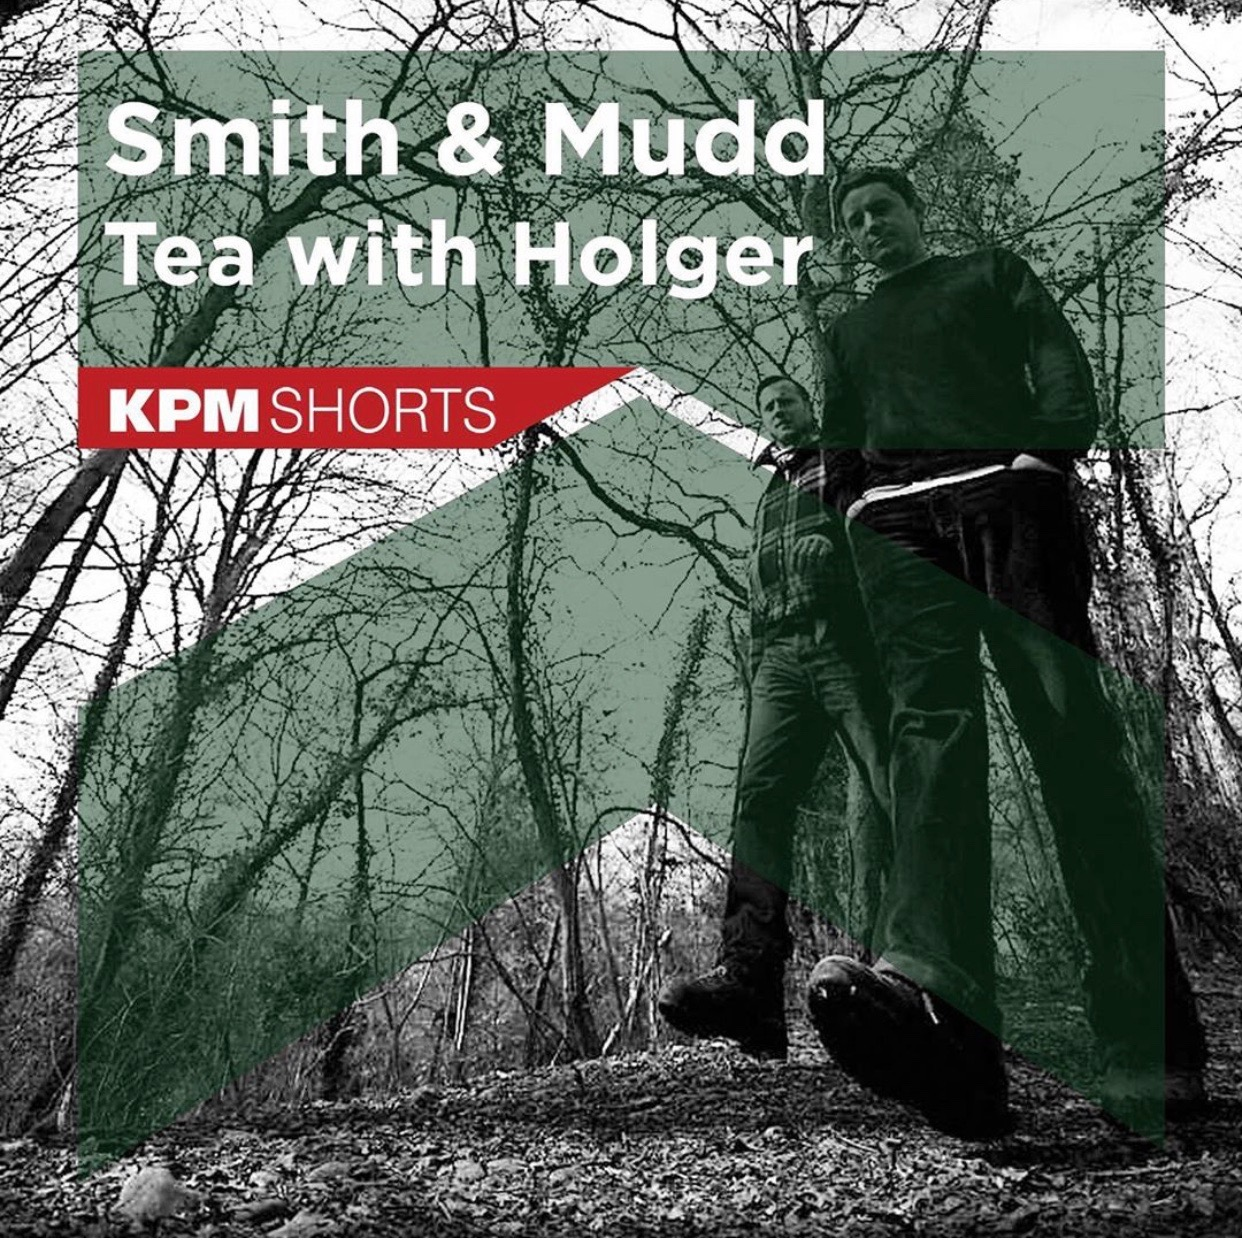 Client: KPM / EMI Original Compositions by Smith & Mudd for KPM Shorts series  Inspired by time spent with the late great Holger Czukay